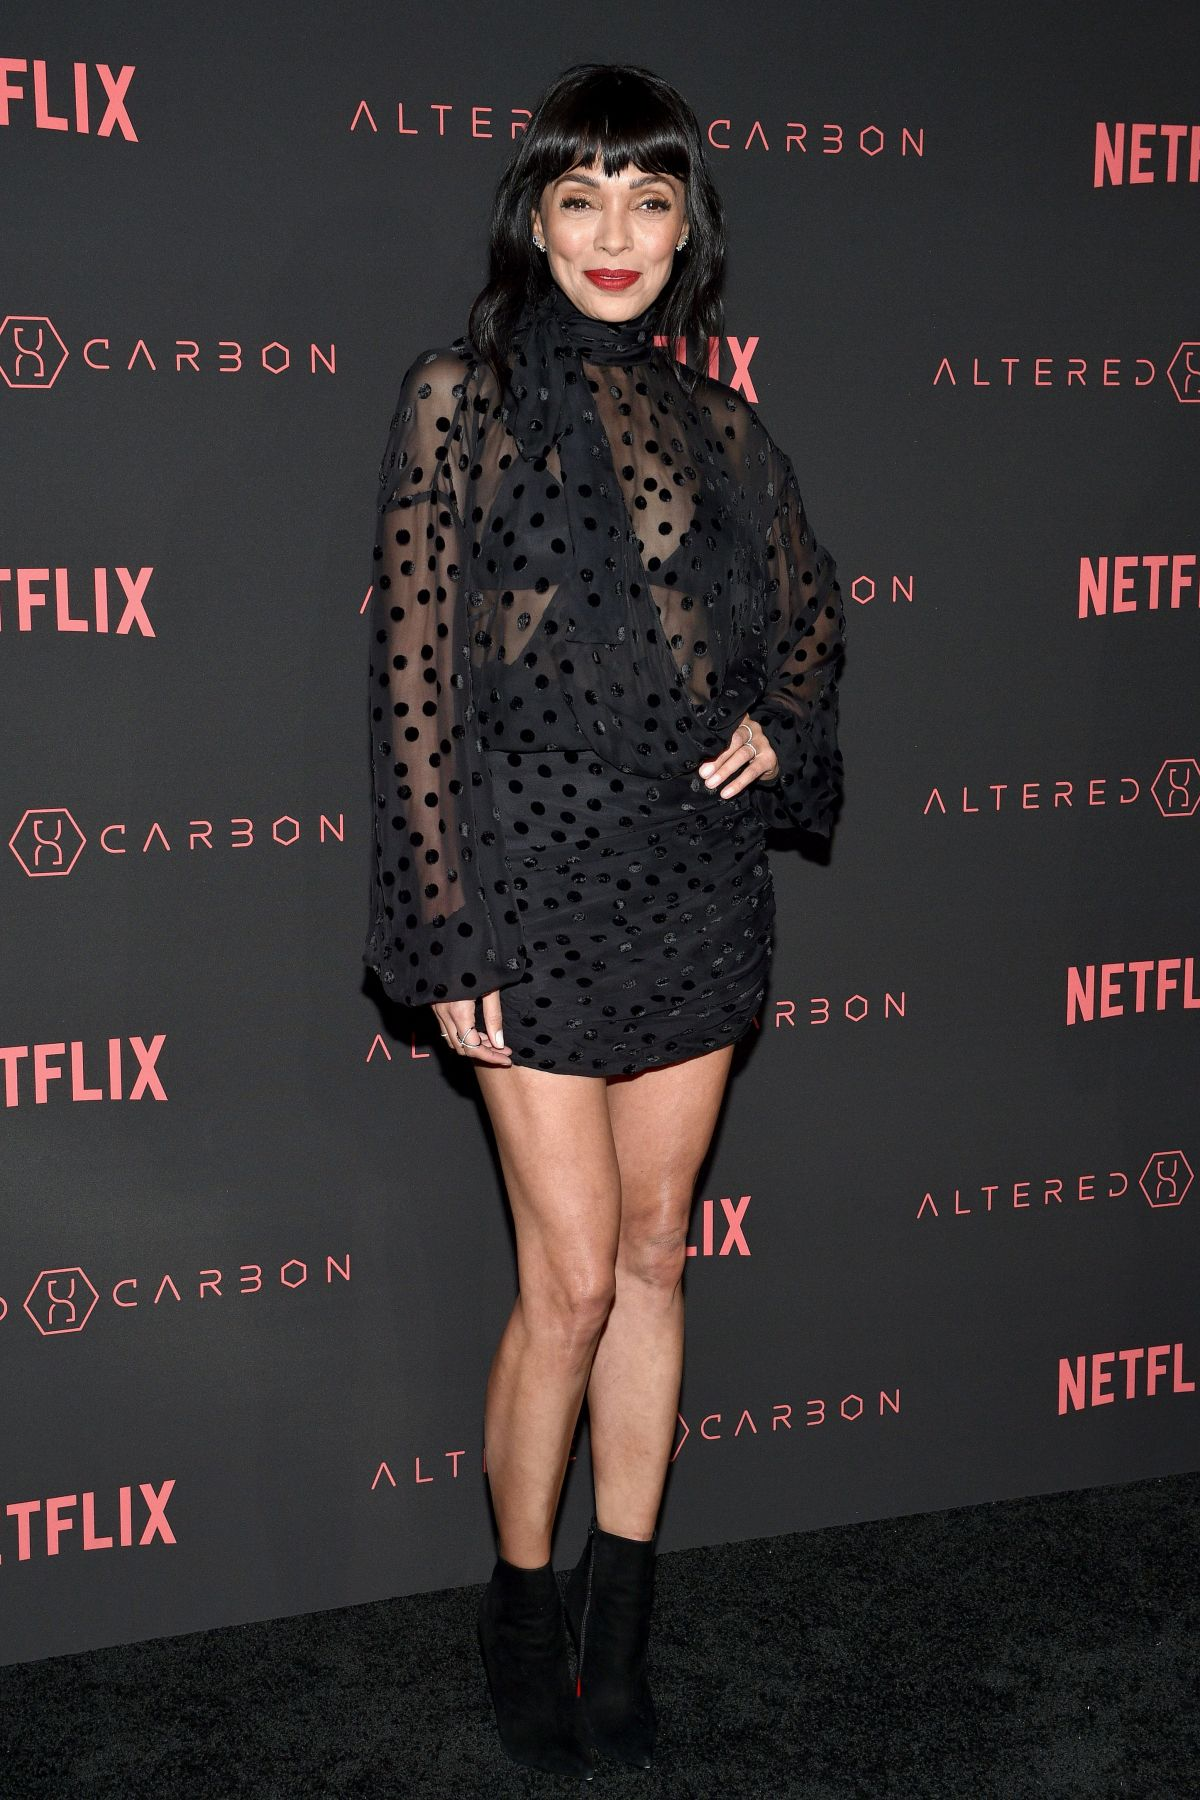 tamara taylor at altered carbon premiere in los angeles 02